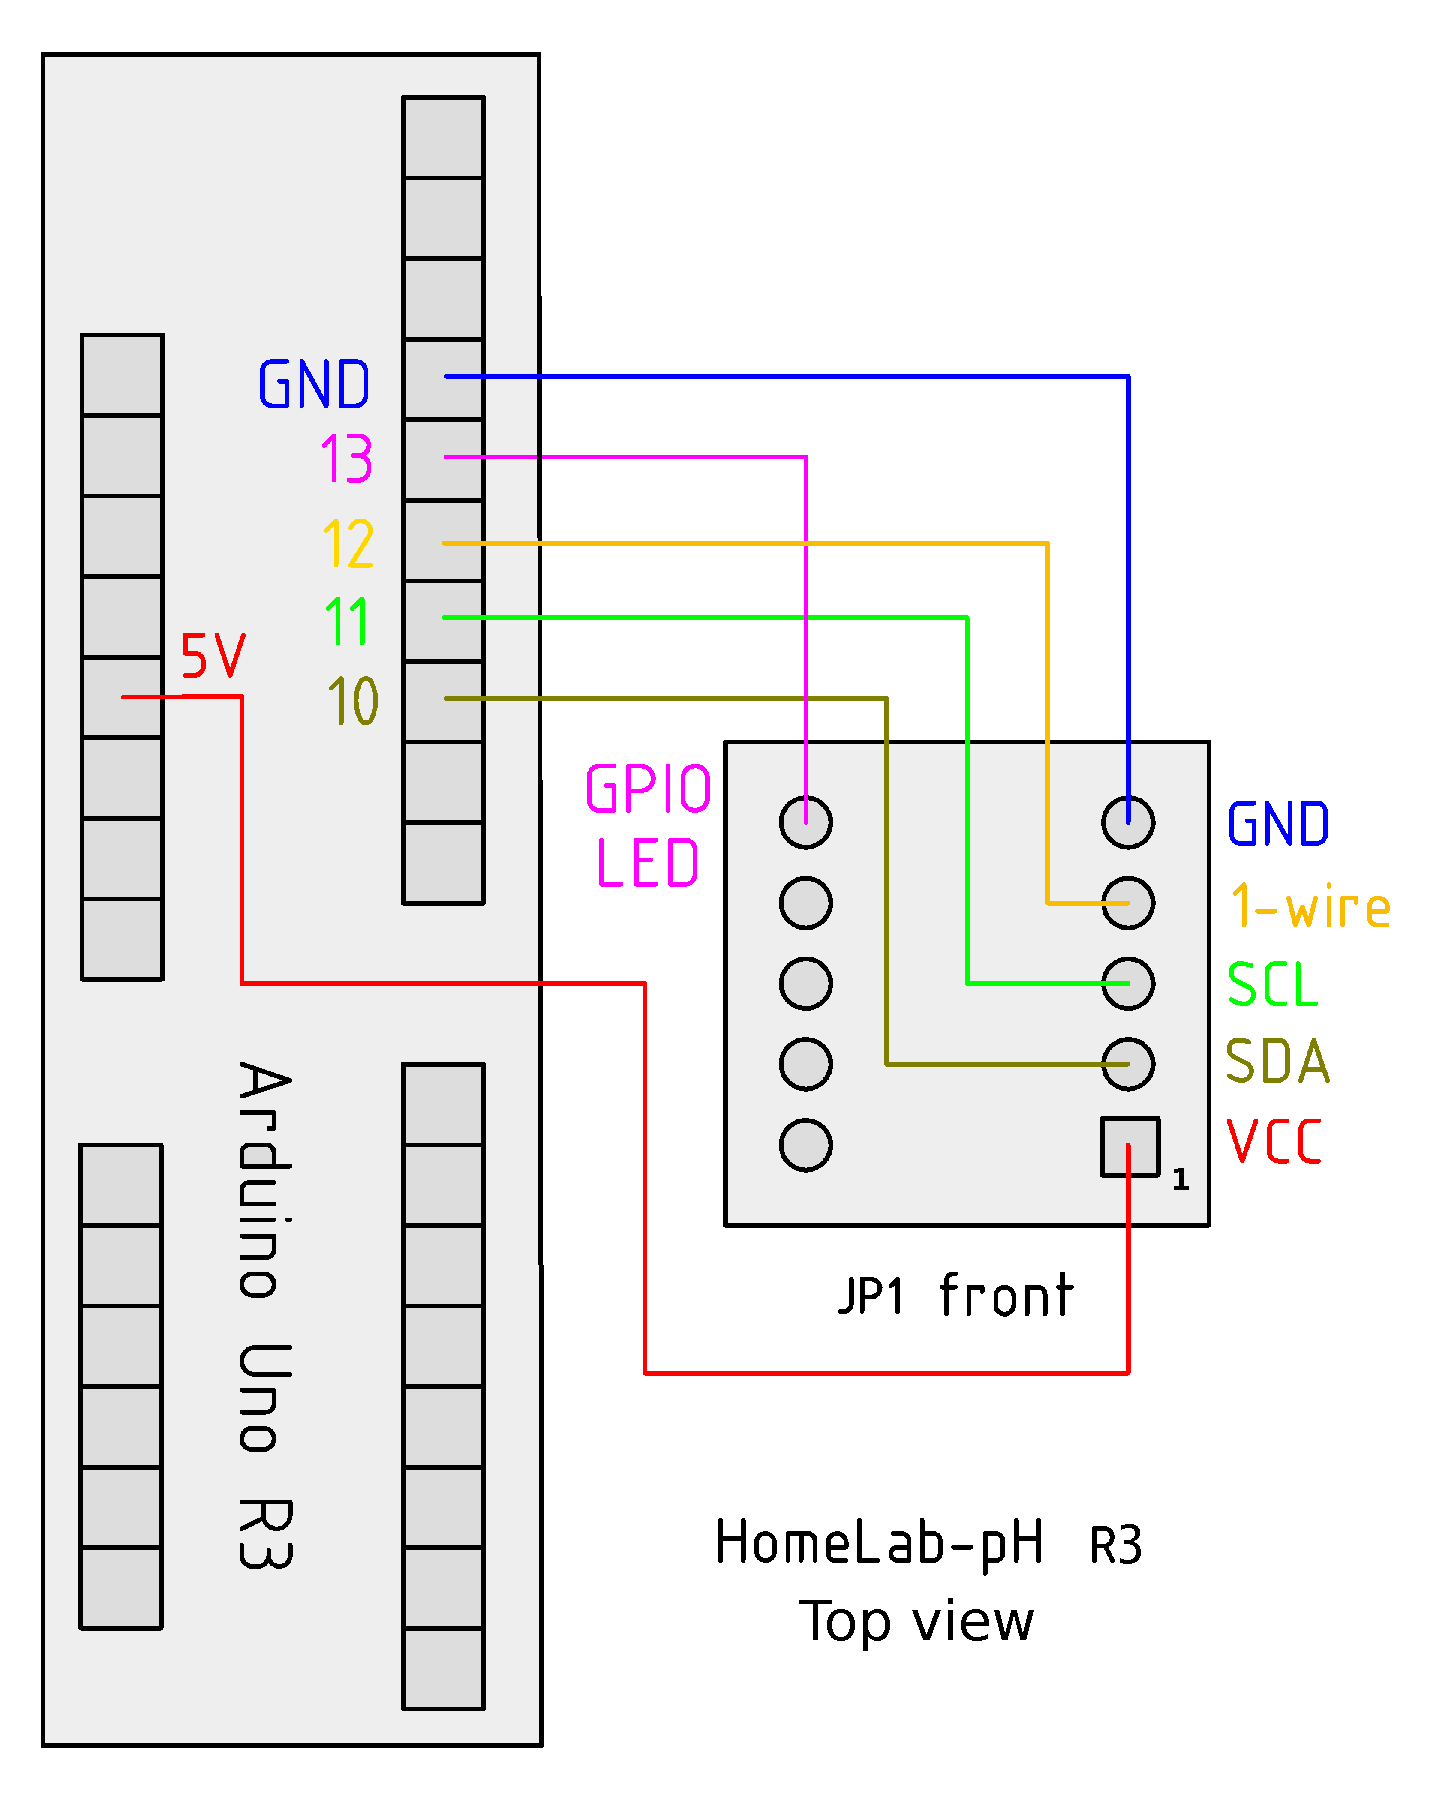 HomeLab-pH connect to Arduino Uno-R3 diagram